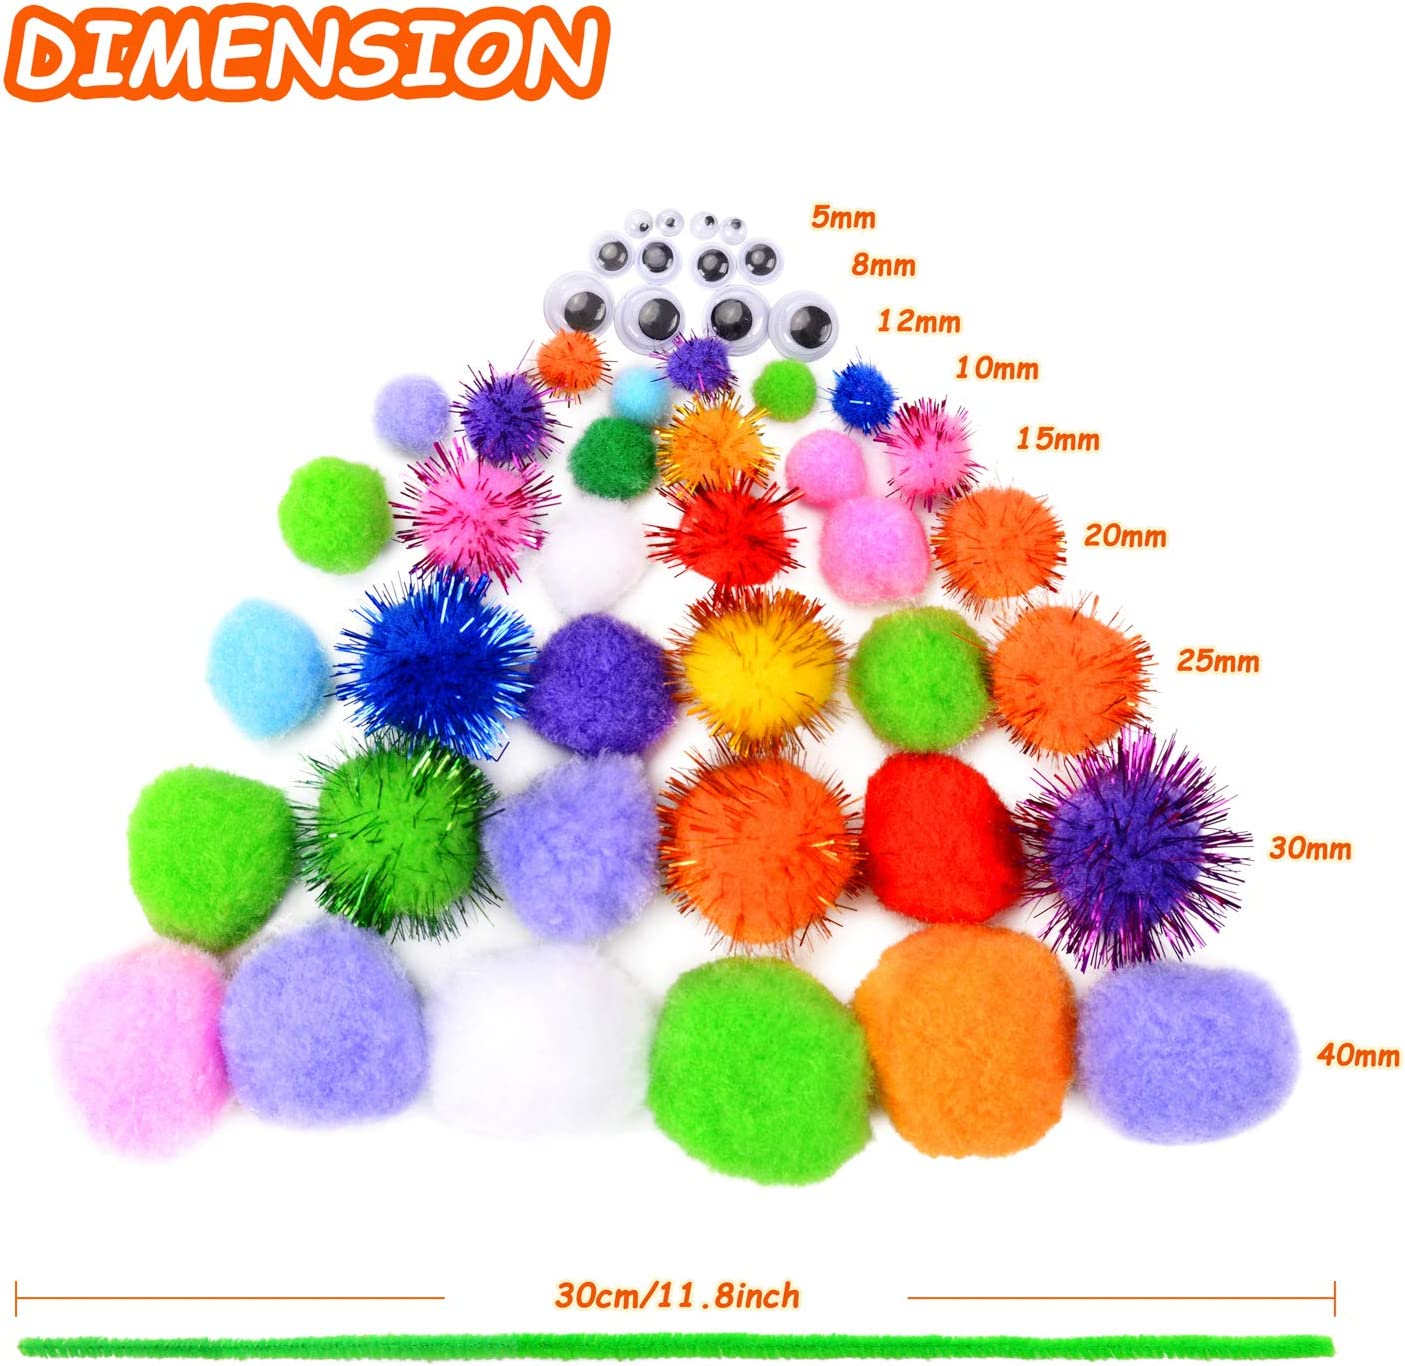 250 Pieces 6 Sizes Assorted Pom Poms 100 Pieces Glitter Pompoms and 150 Pieces Wiggle Googly Eyes for DIY Arts Crafts ZHAOER 200 Pieces Chenille Stems